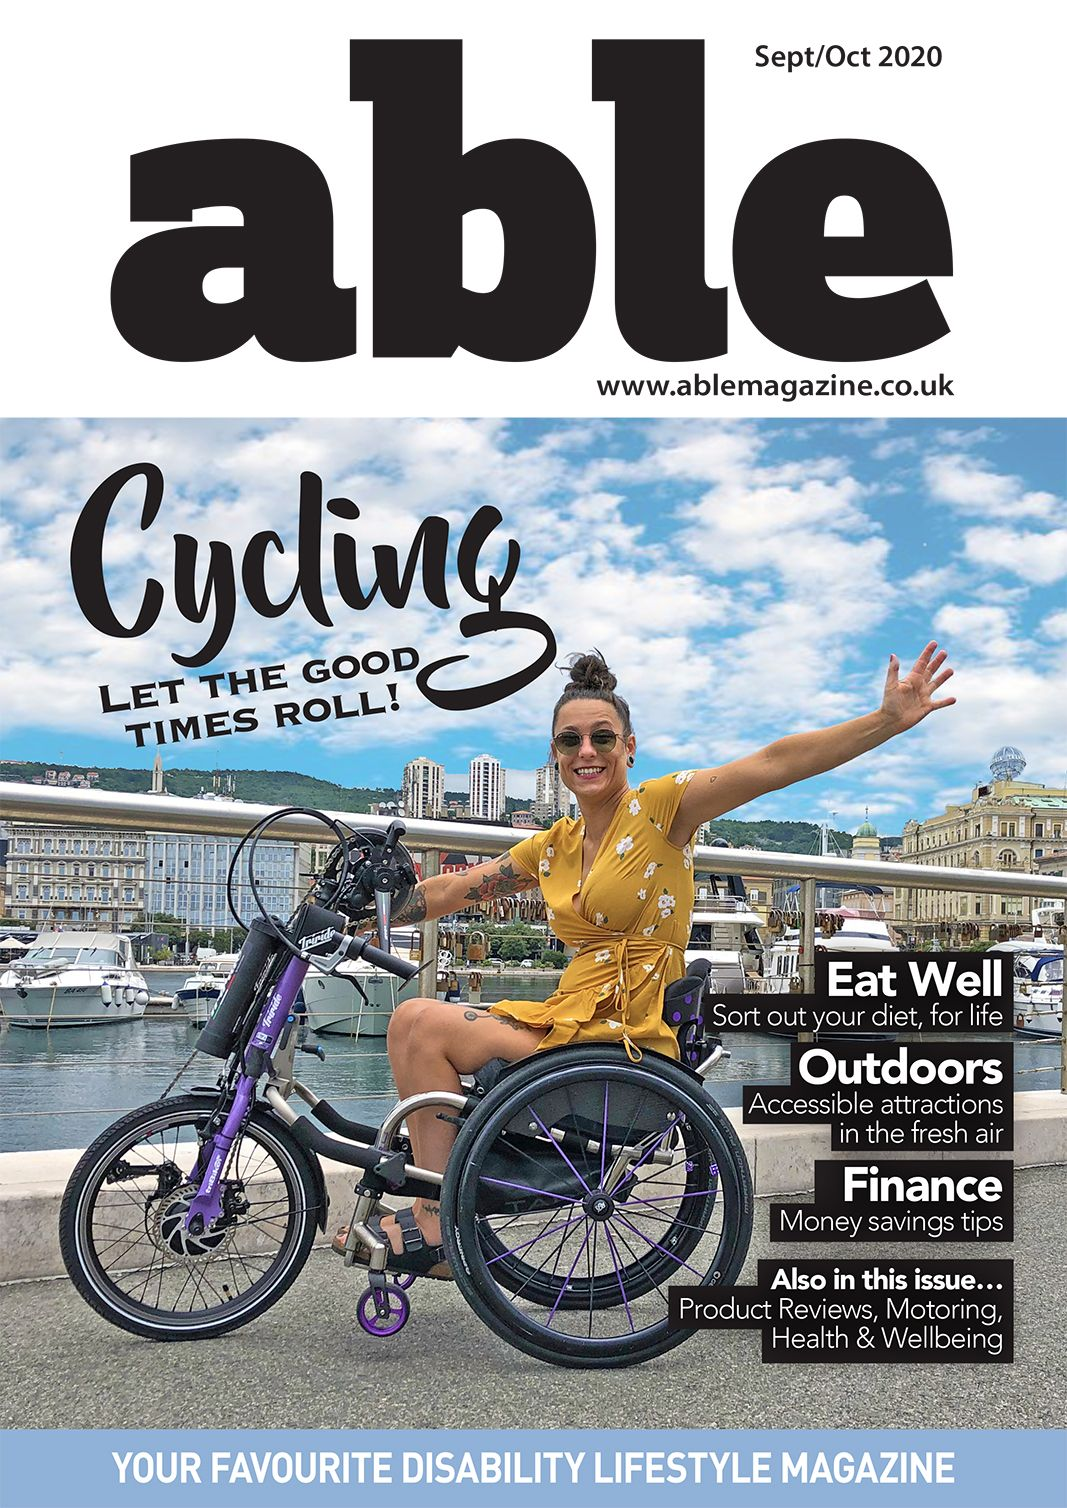 Picture of the Able Magazine September cover.